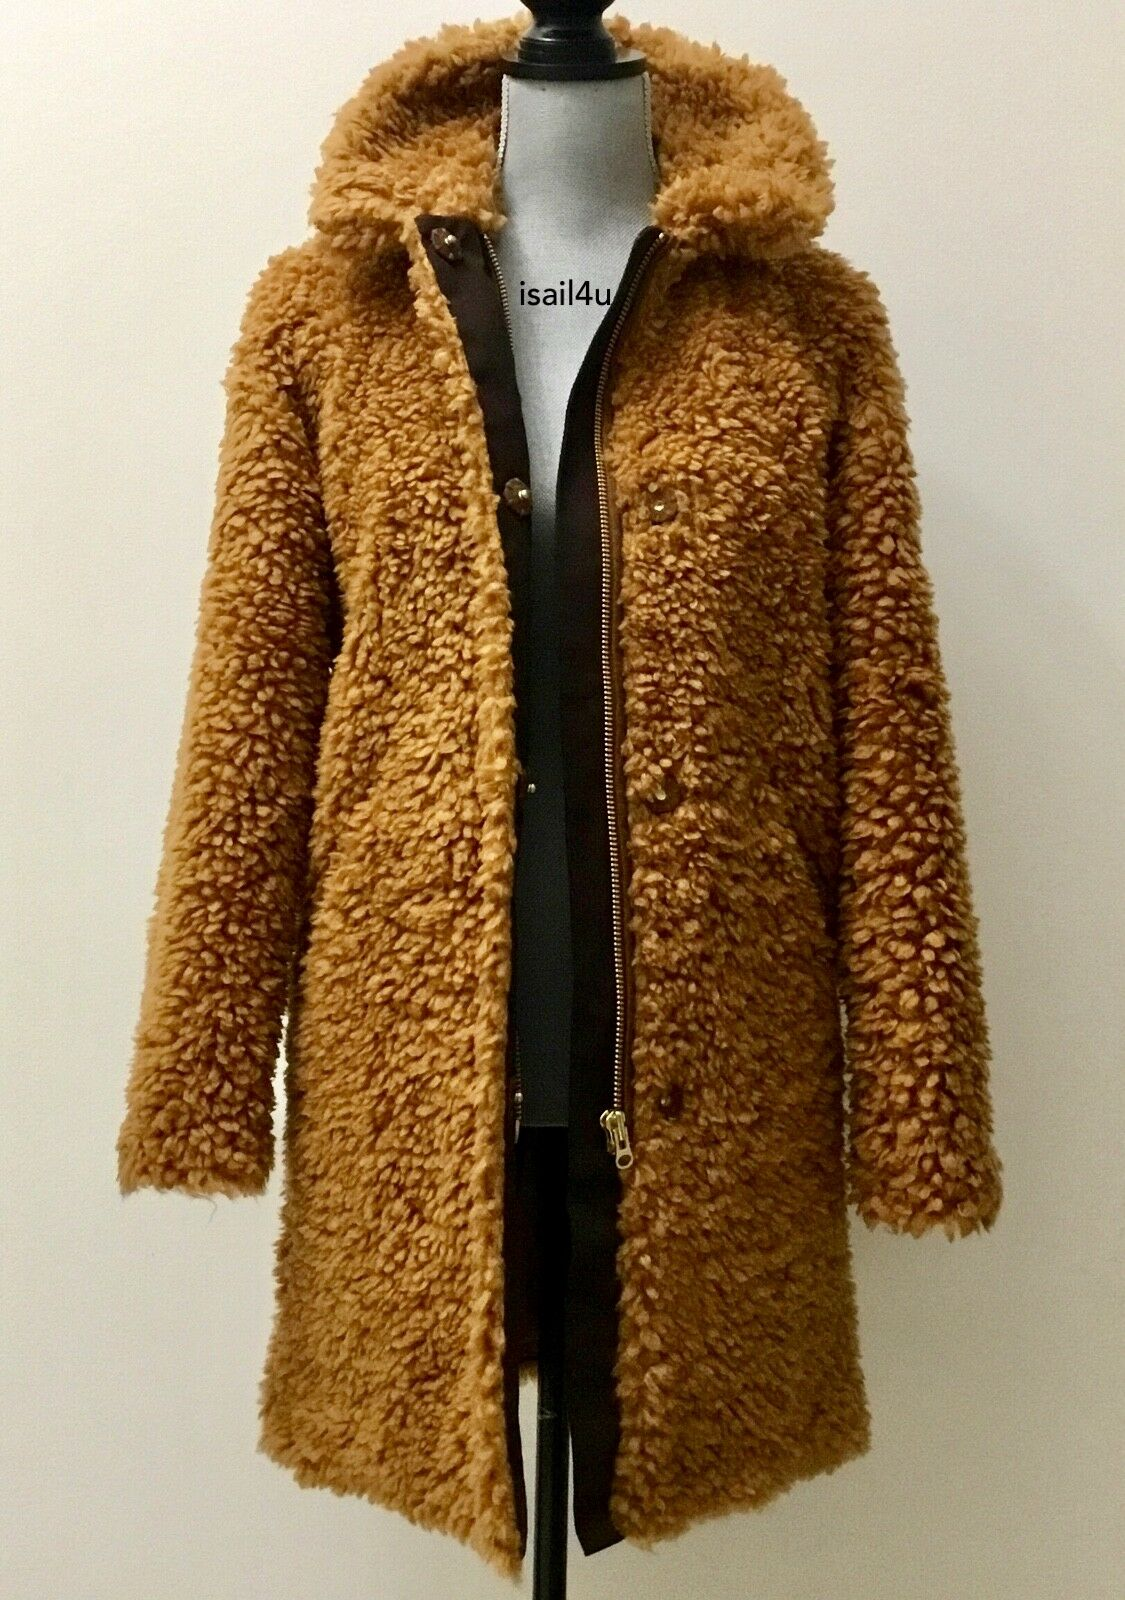 J.Crew Textured Teddy Coat NWT US Women's Size  XS, S, M, L, XL